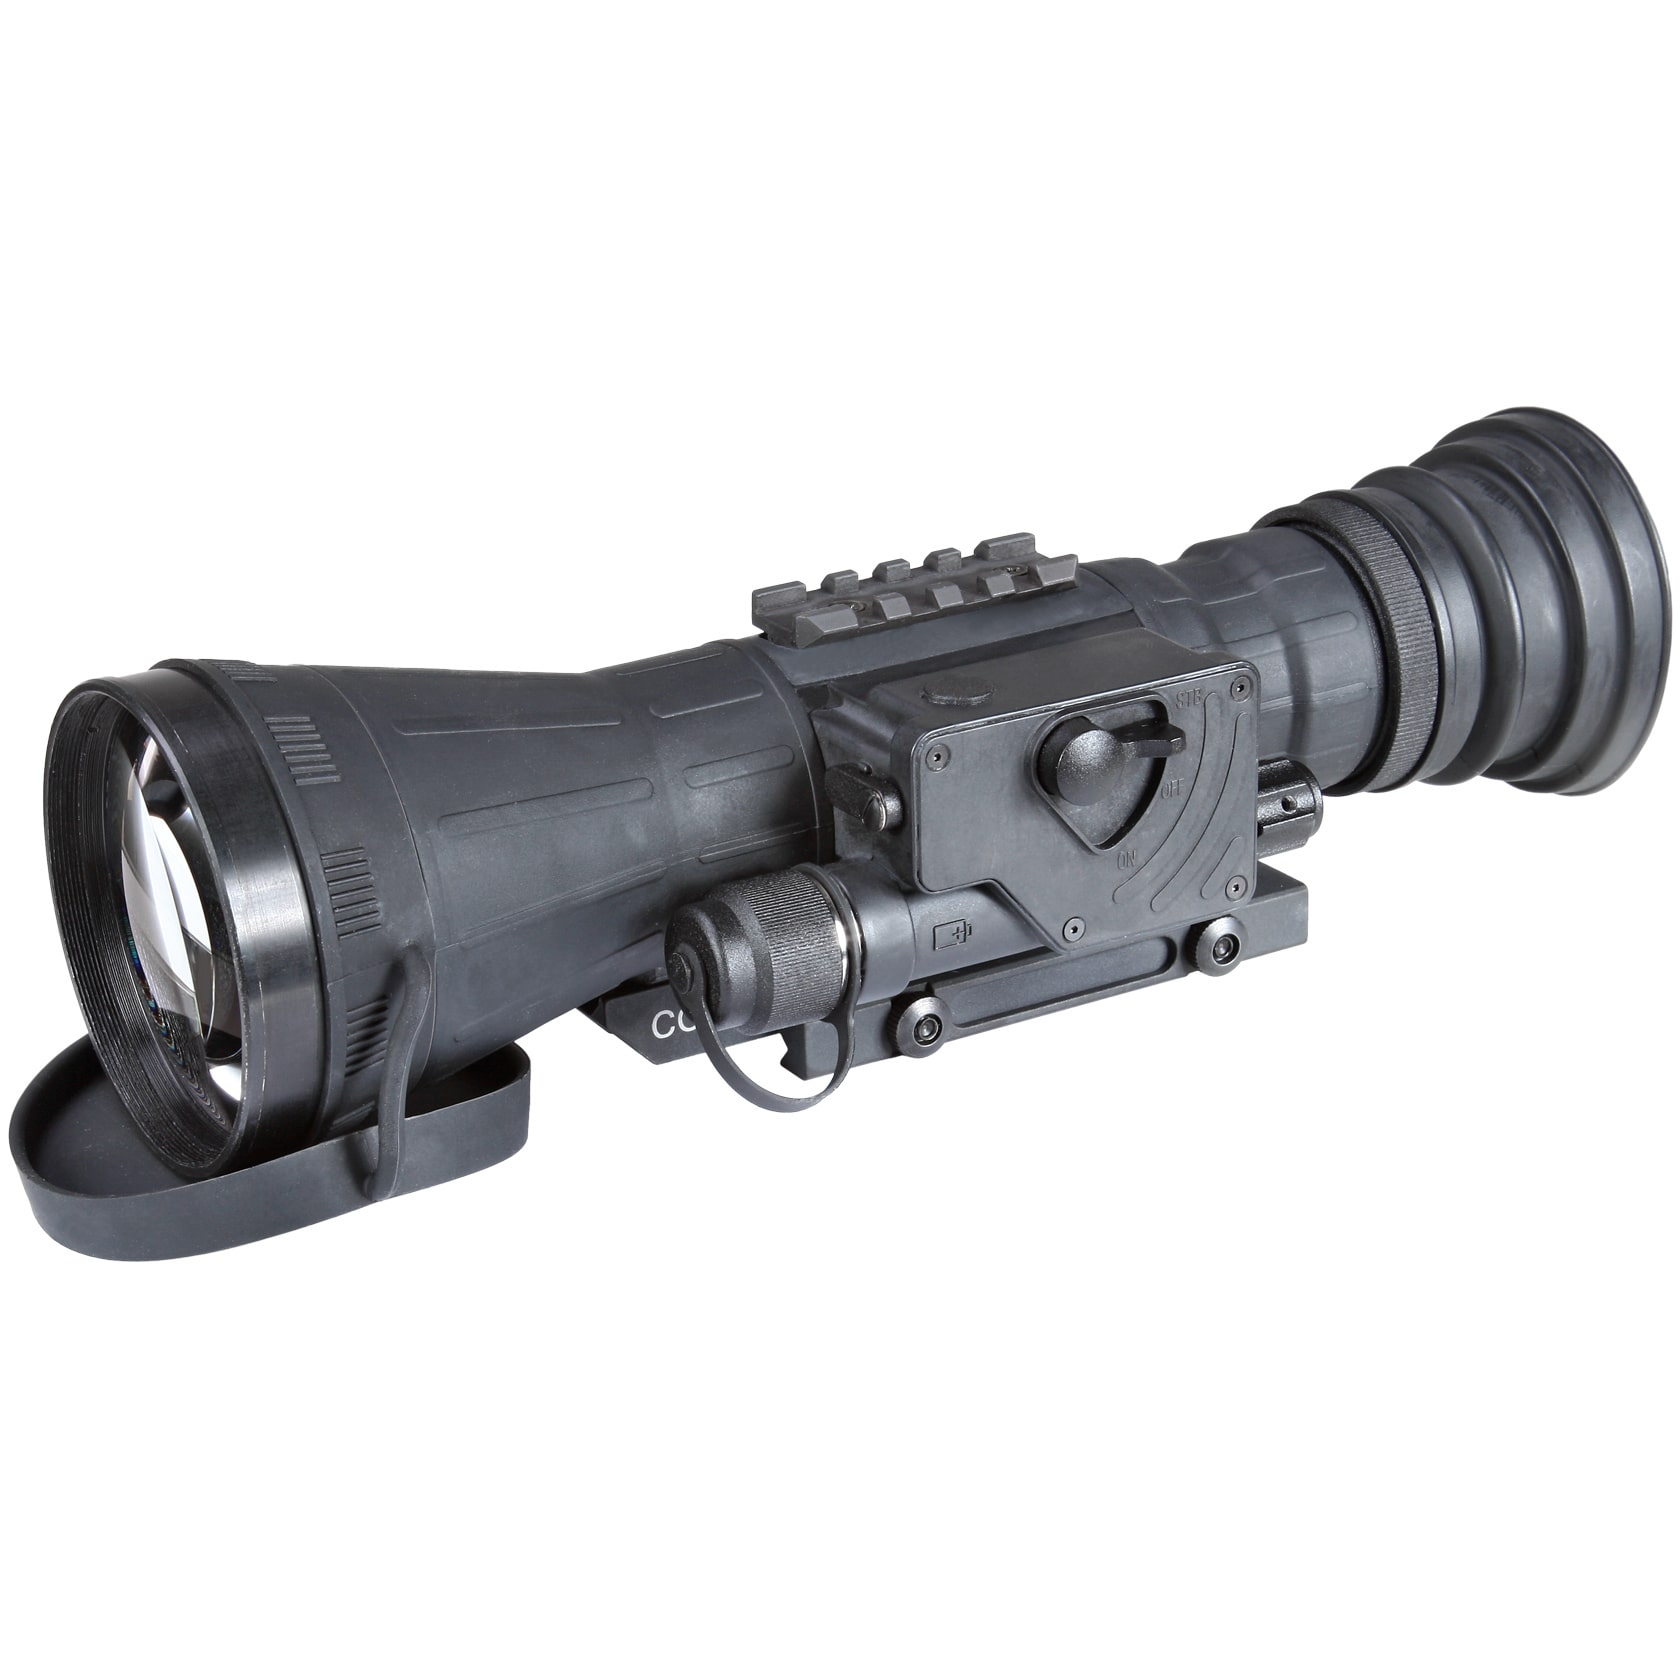 Armasight CO-LR Ghost MG Gen 3 Night Vision Clip-On System by Armasight